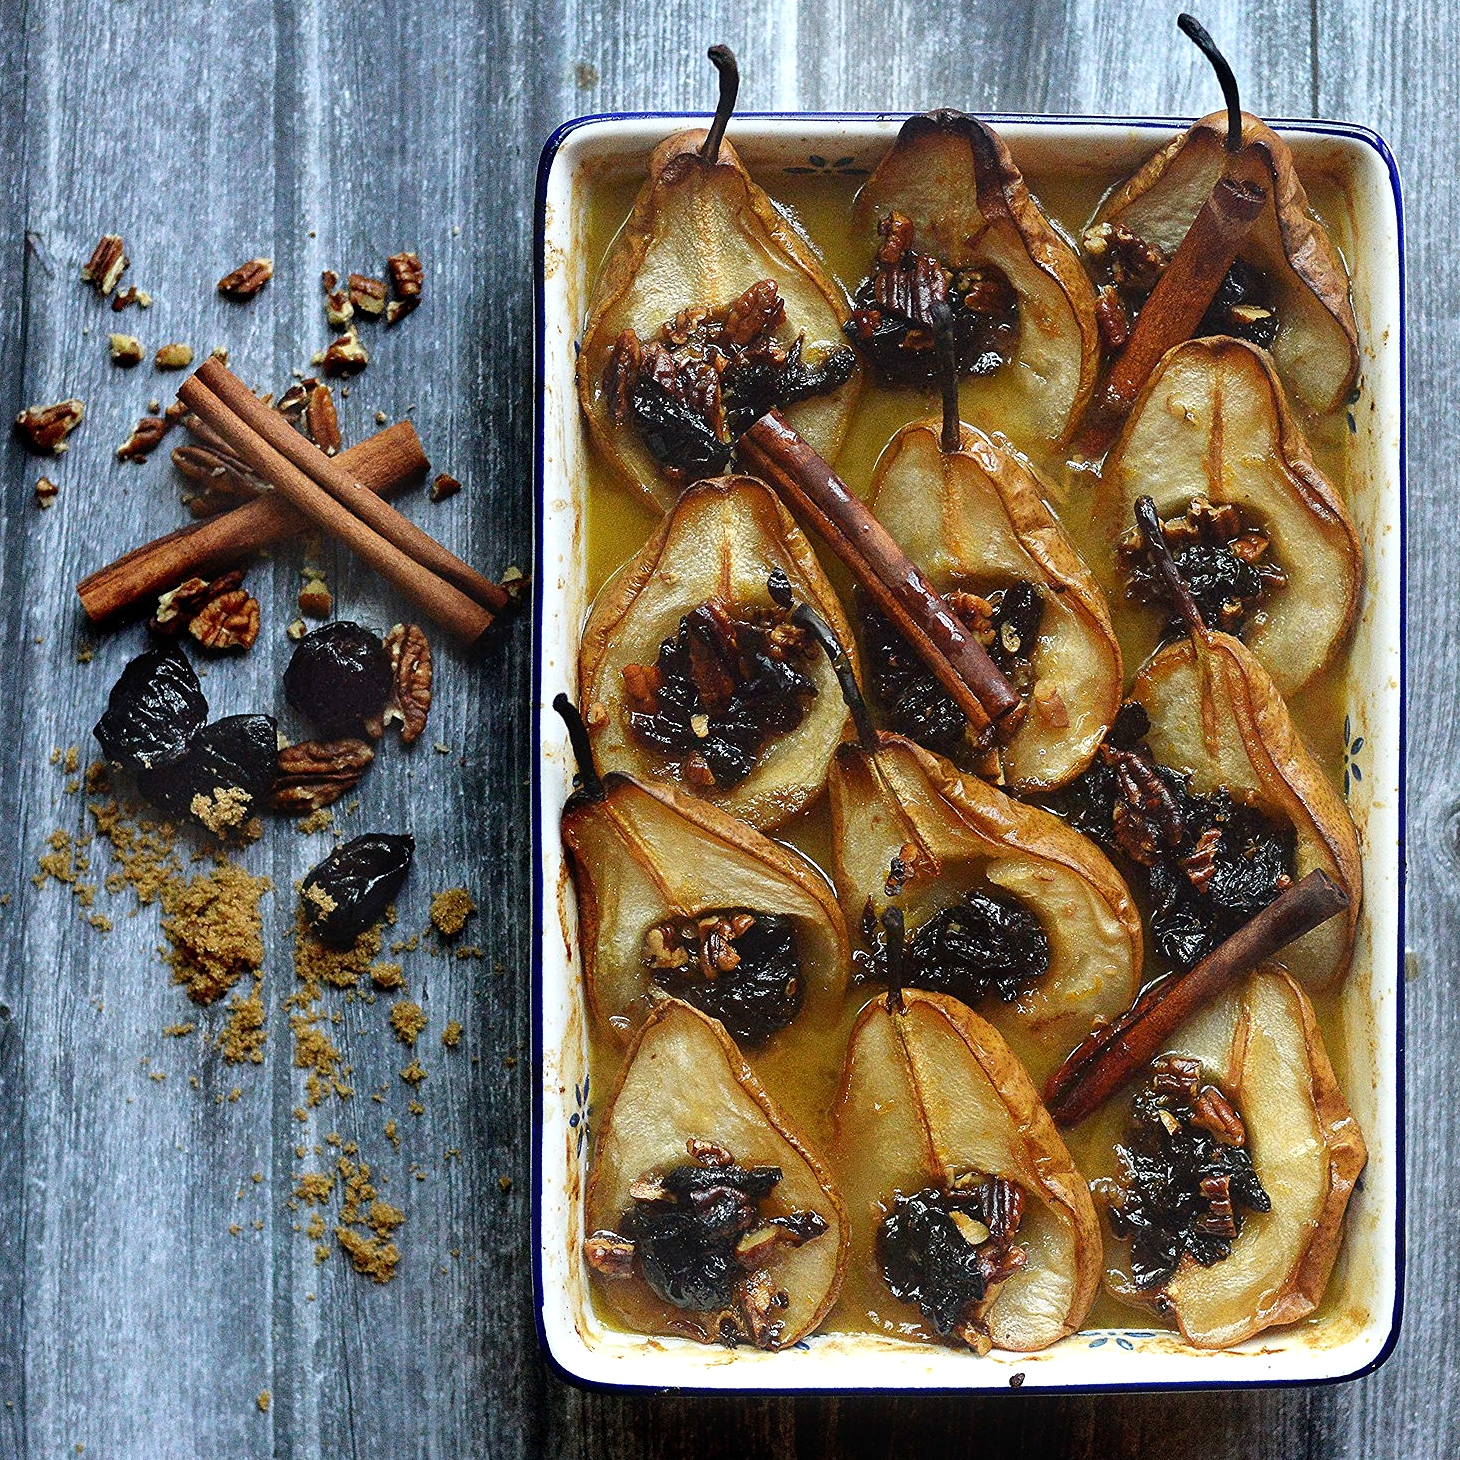 Roasted Pears with Pecans & Prunes by Chef Mike Ward